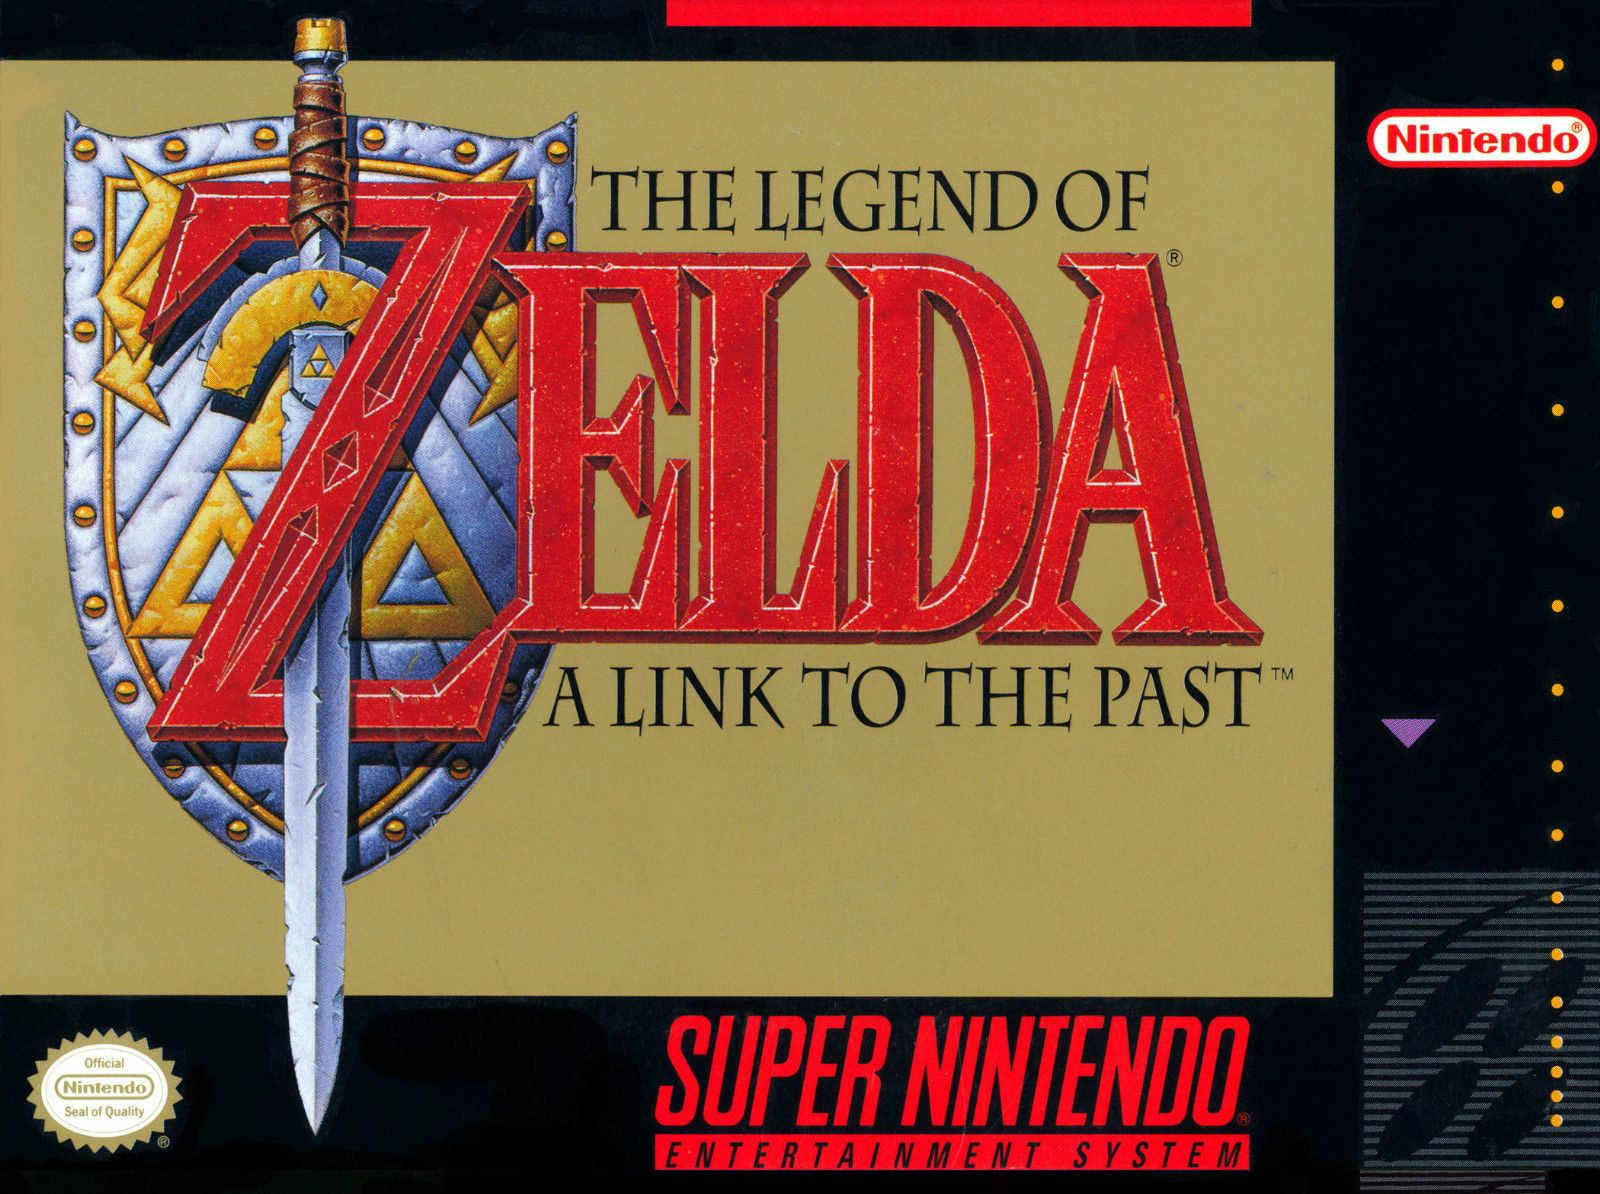 A4 Poster The Legend Of Zelda A Link To The Past Super Nintendo